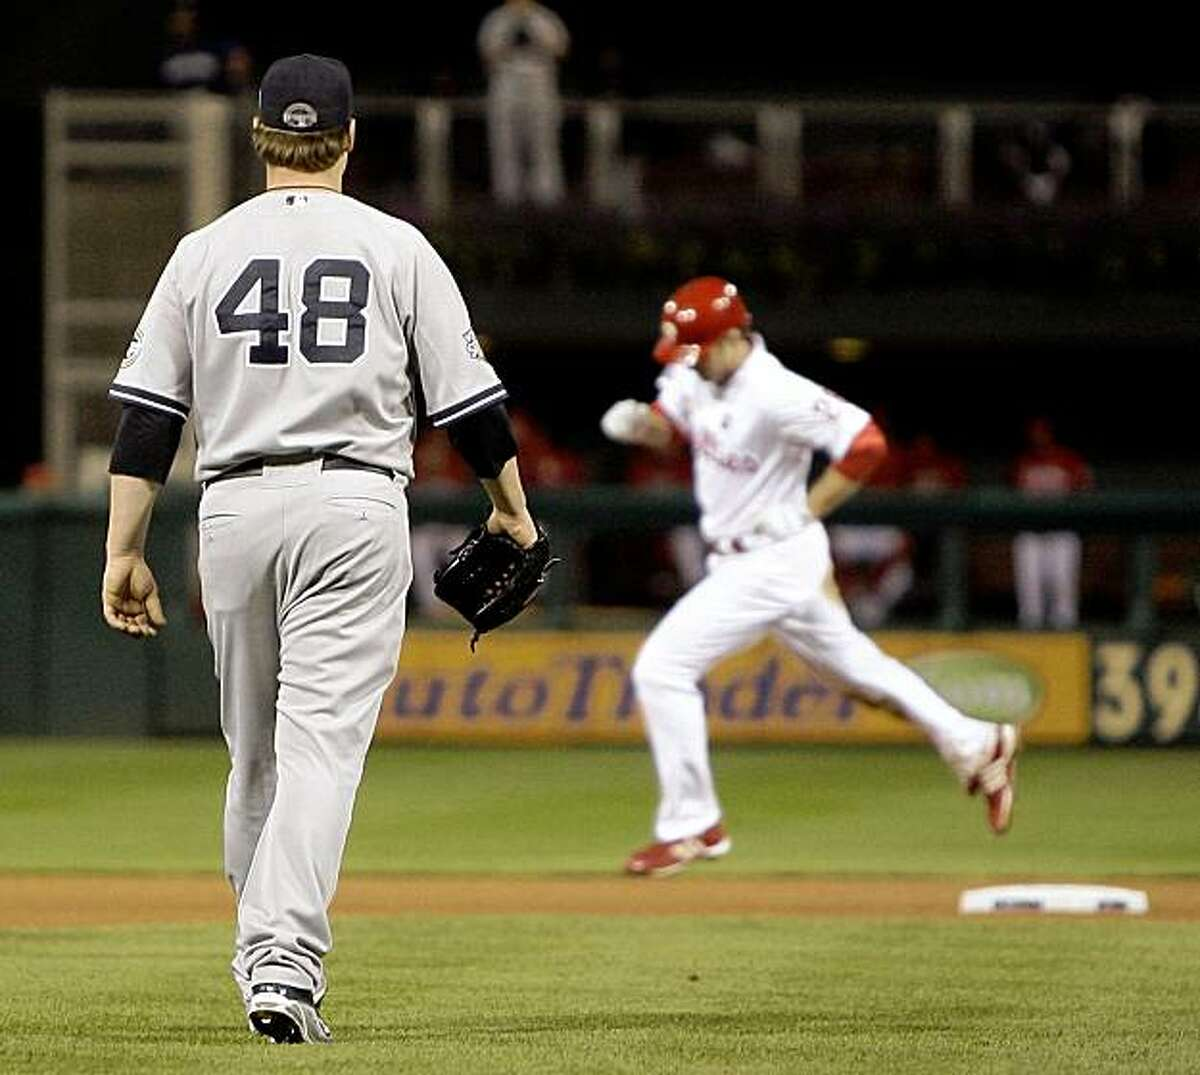 New York Yankees' Phil Coke watches as Philadelphia Phillies' Chase Utley rounds the bases after Utley hit a home run during the seventh inning of Game 5 of the Major League Baseball World Series Monday, Nov. 2, 2009, in Philadelphia. (AP Photo/Matt Slocum)